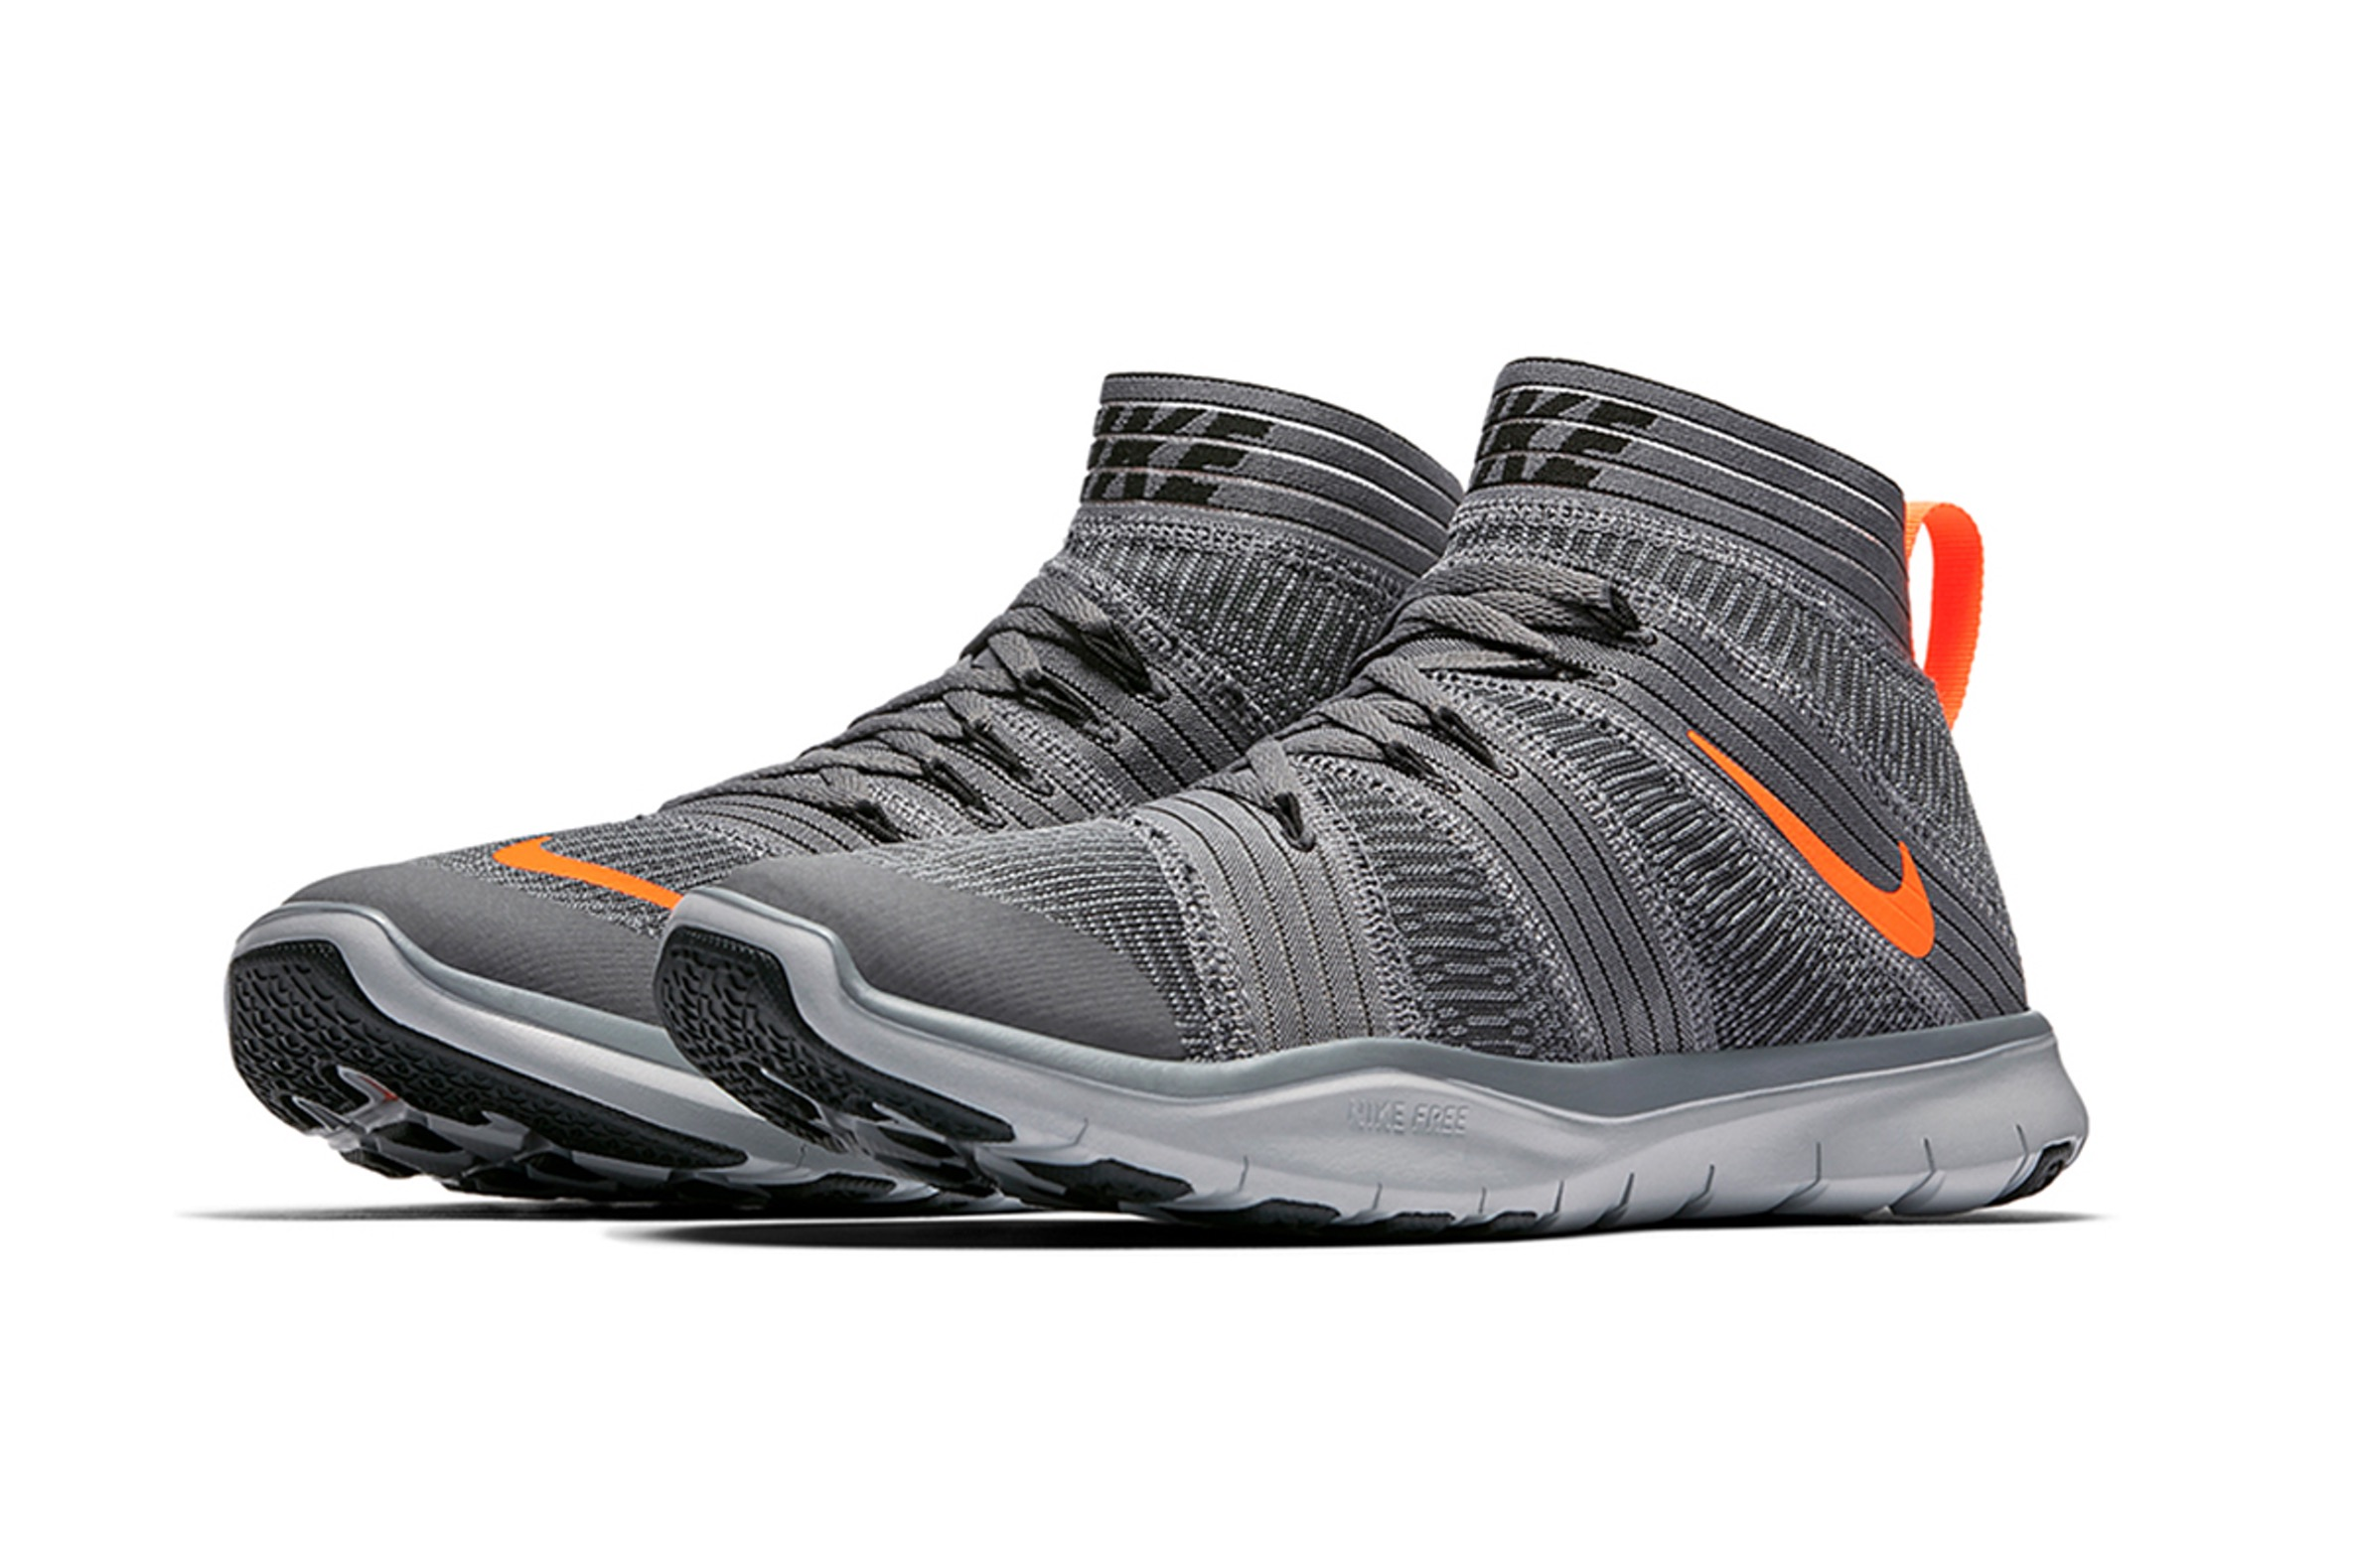 check out a095c d5932 Introducing the Nike Free Train Virtue